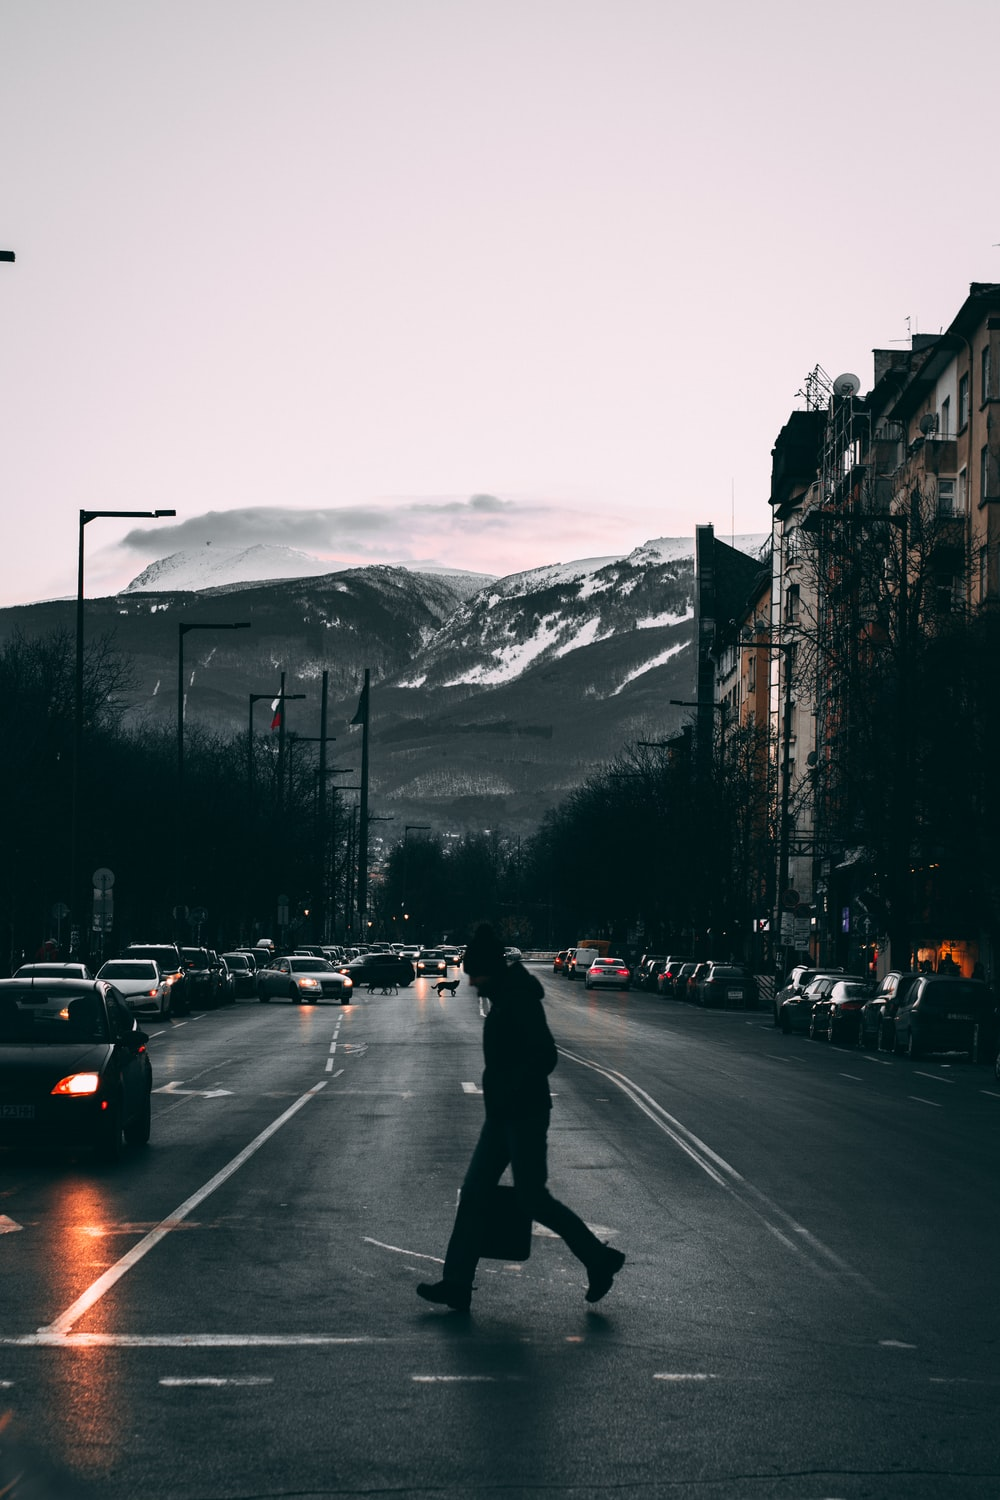 people walking on street near mountain during daytime